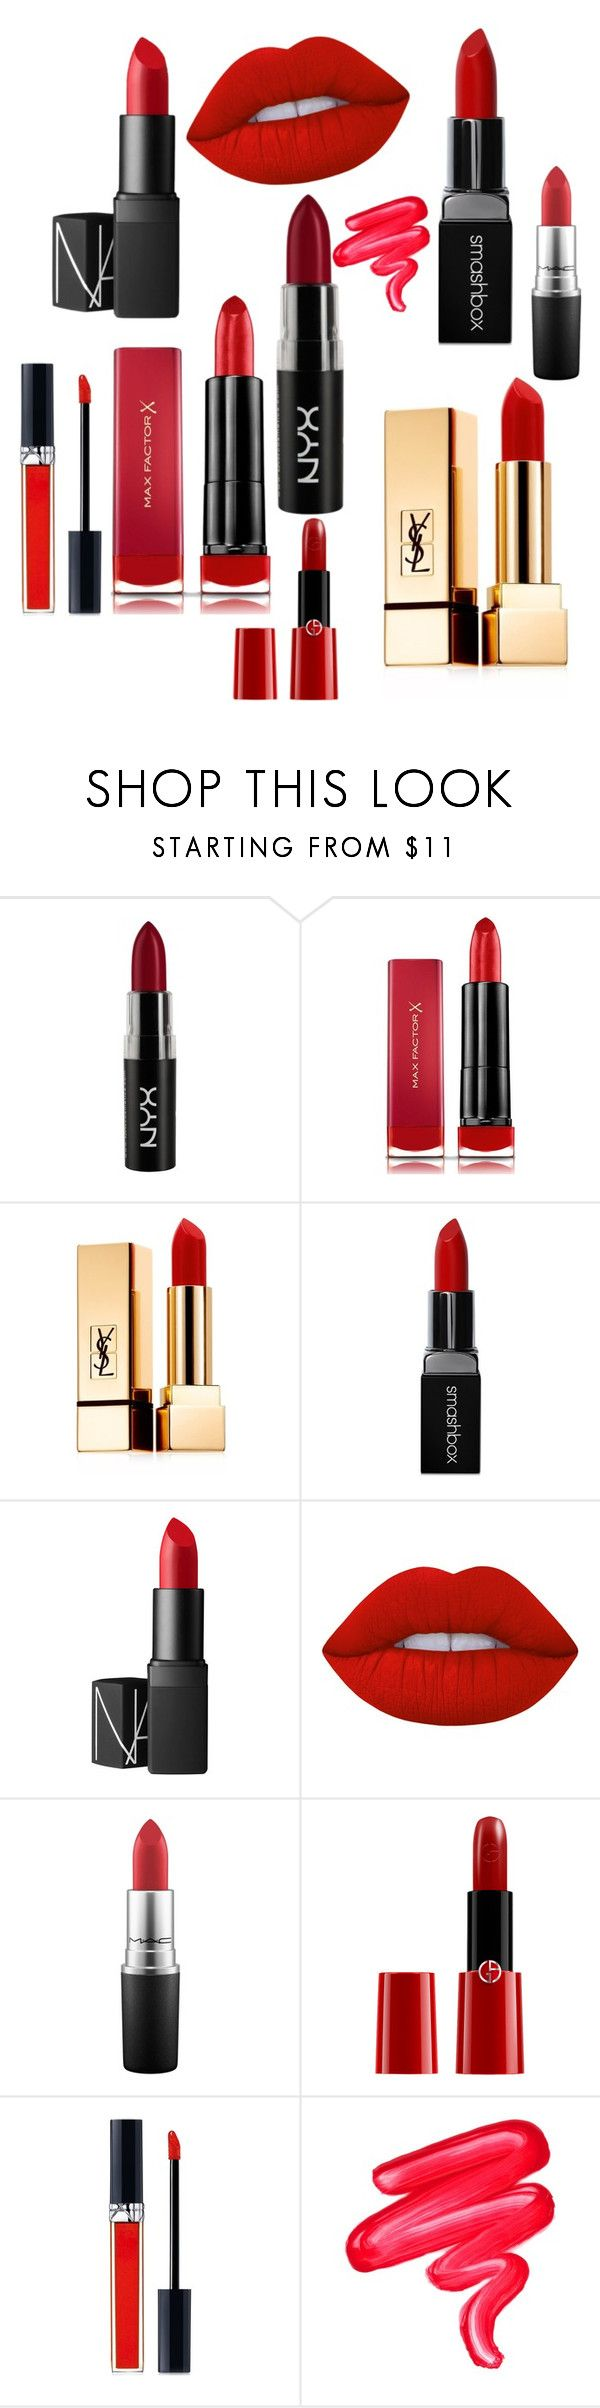 Red Fall Lipsticks featuring beauty, Yves Saint Laurent, Max Factor, Smashbox, Lime Crime, Christian Dior, NARS Cosmetics, NYX, Giorgio Armani and MAC Cosmetics *affiliate link included